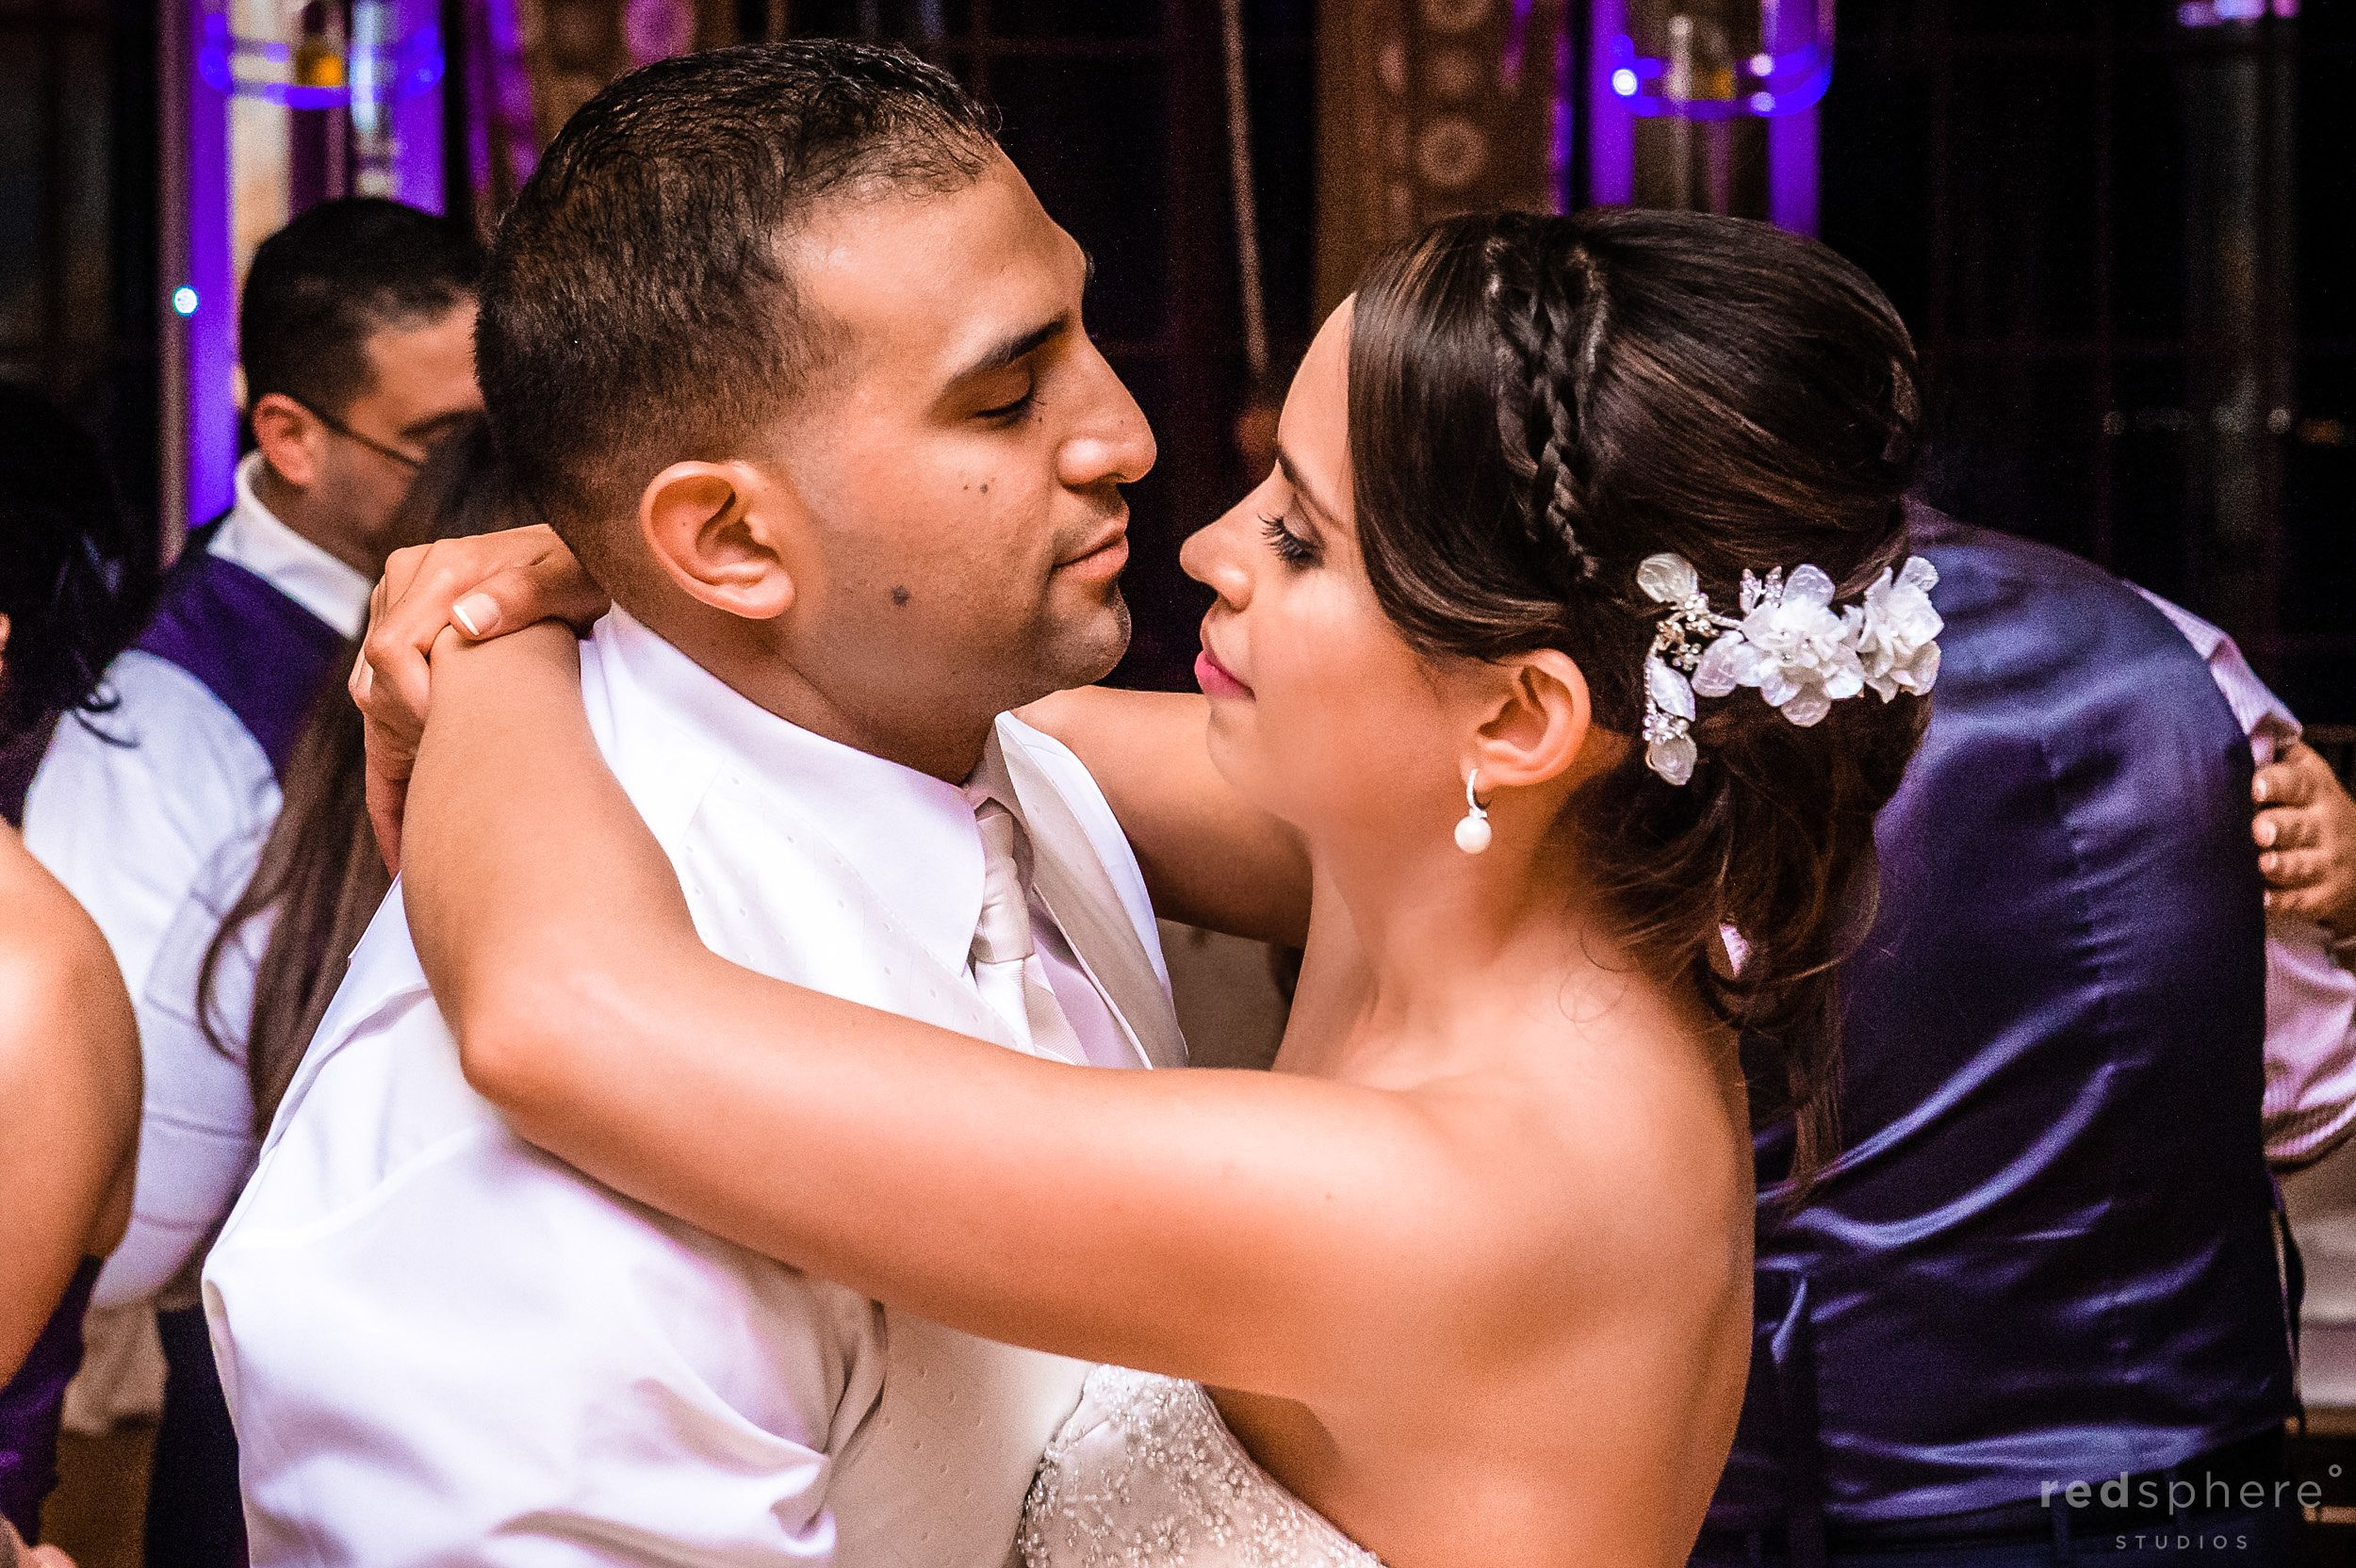 Bride and Groom Stare Into Each Other's Eyes While Slow Dancing, Westin St. Francis Dance Floor